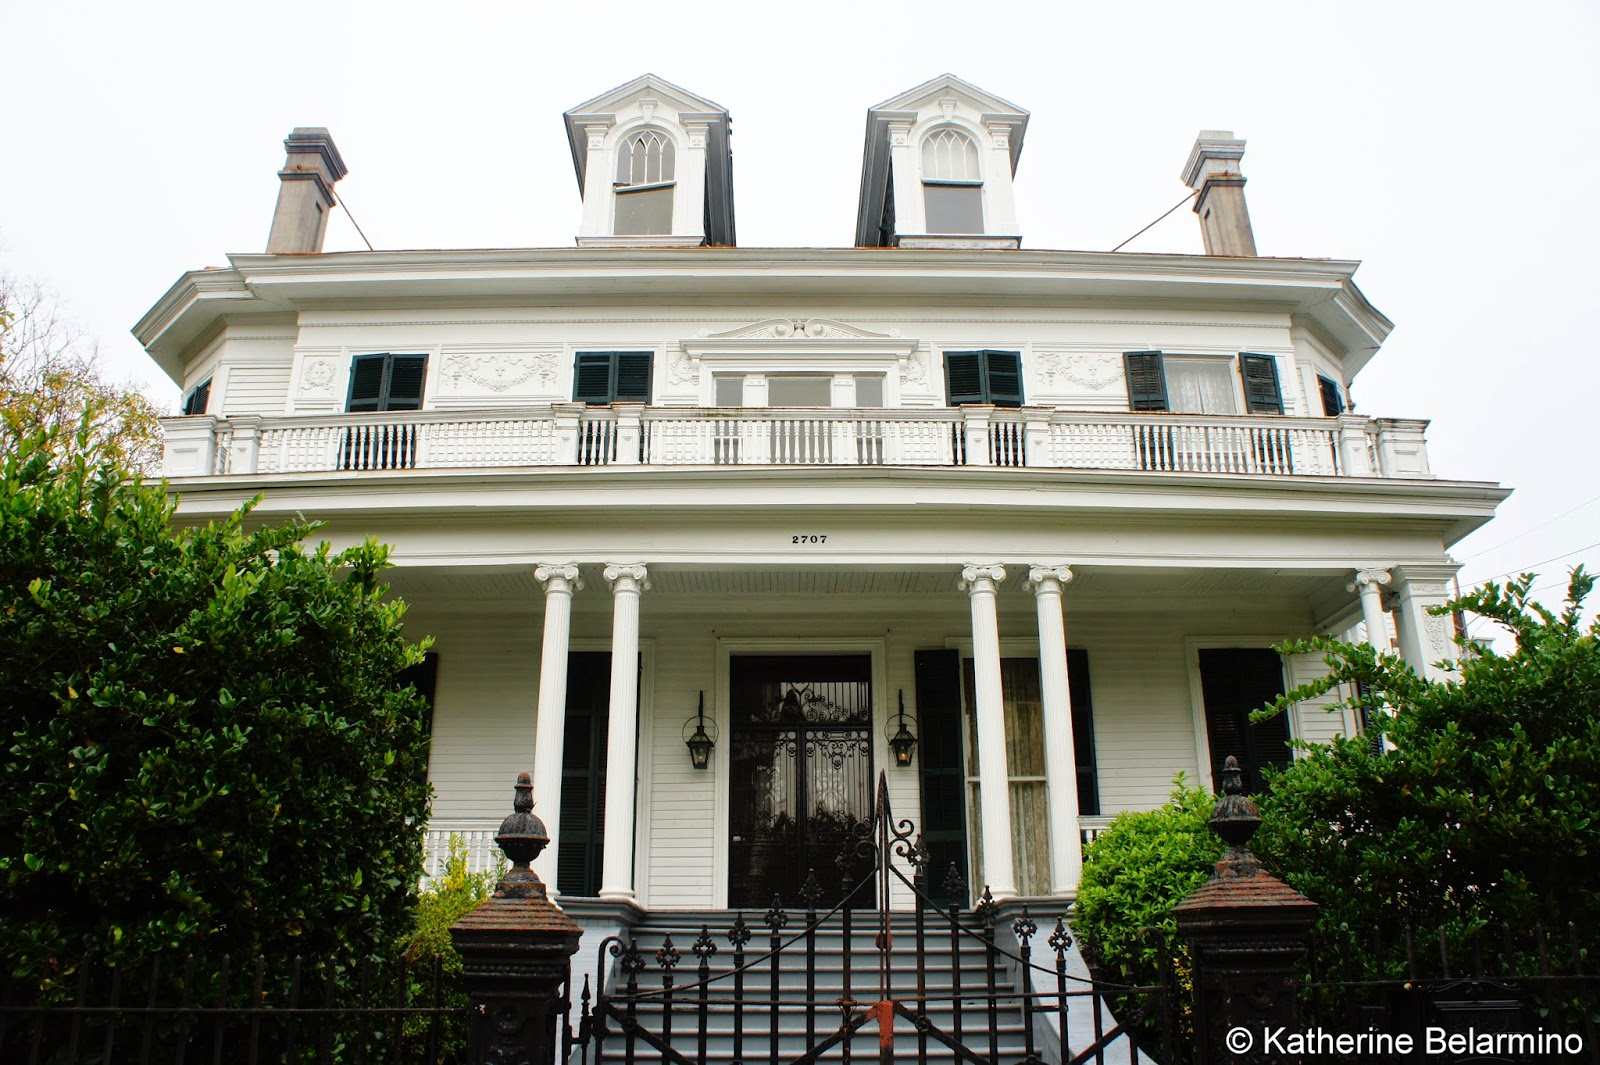 Benjamin Button House Garden District Walking Tour New Orleans & The Walking Tours of New Orleans | Travel the World